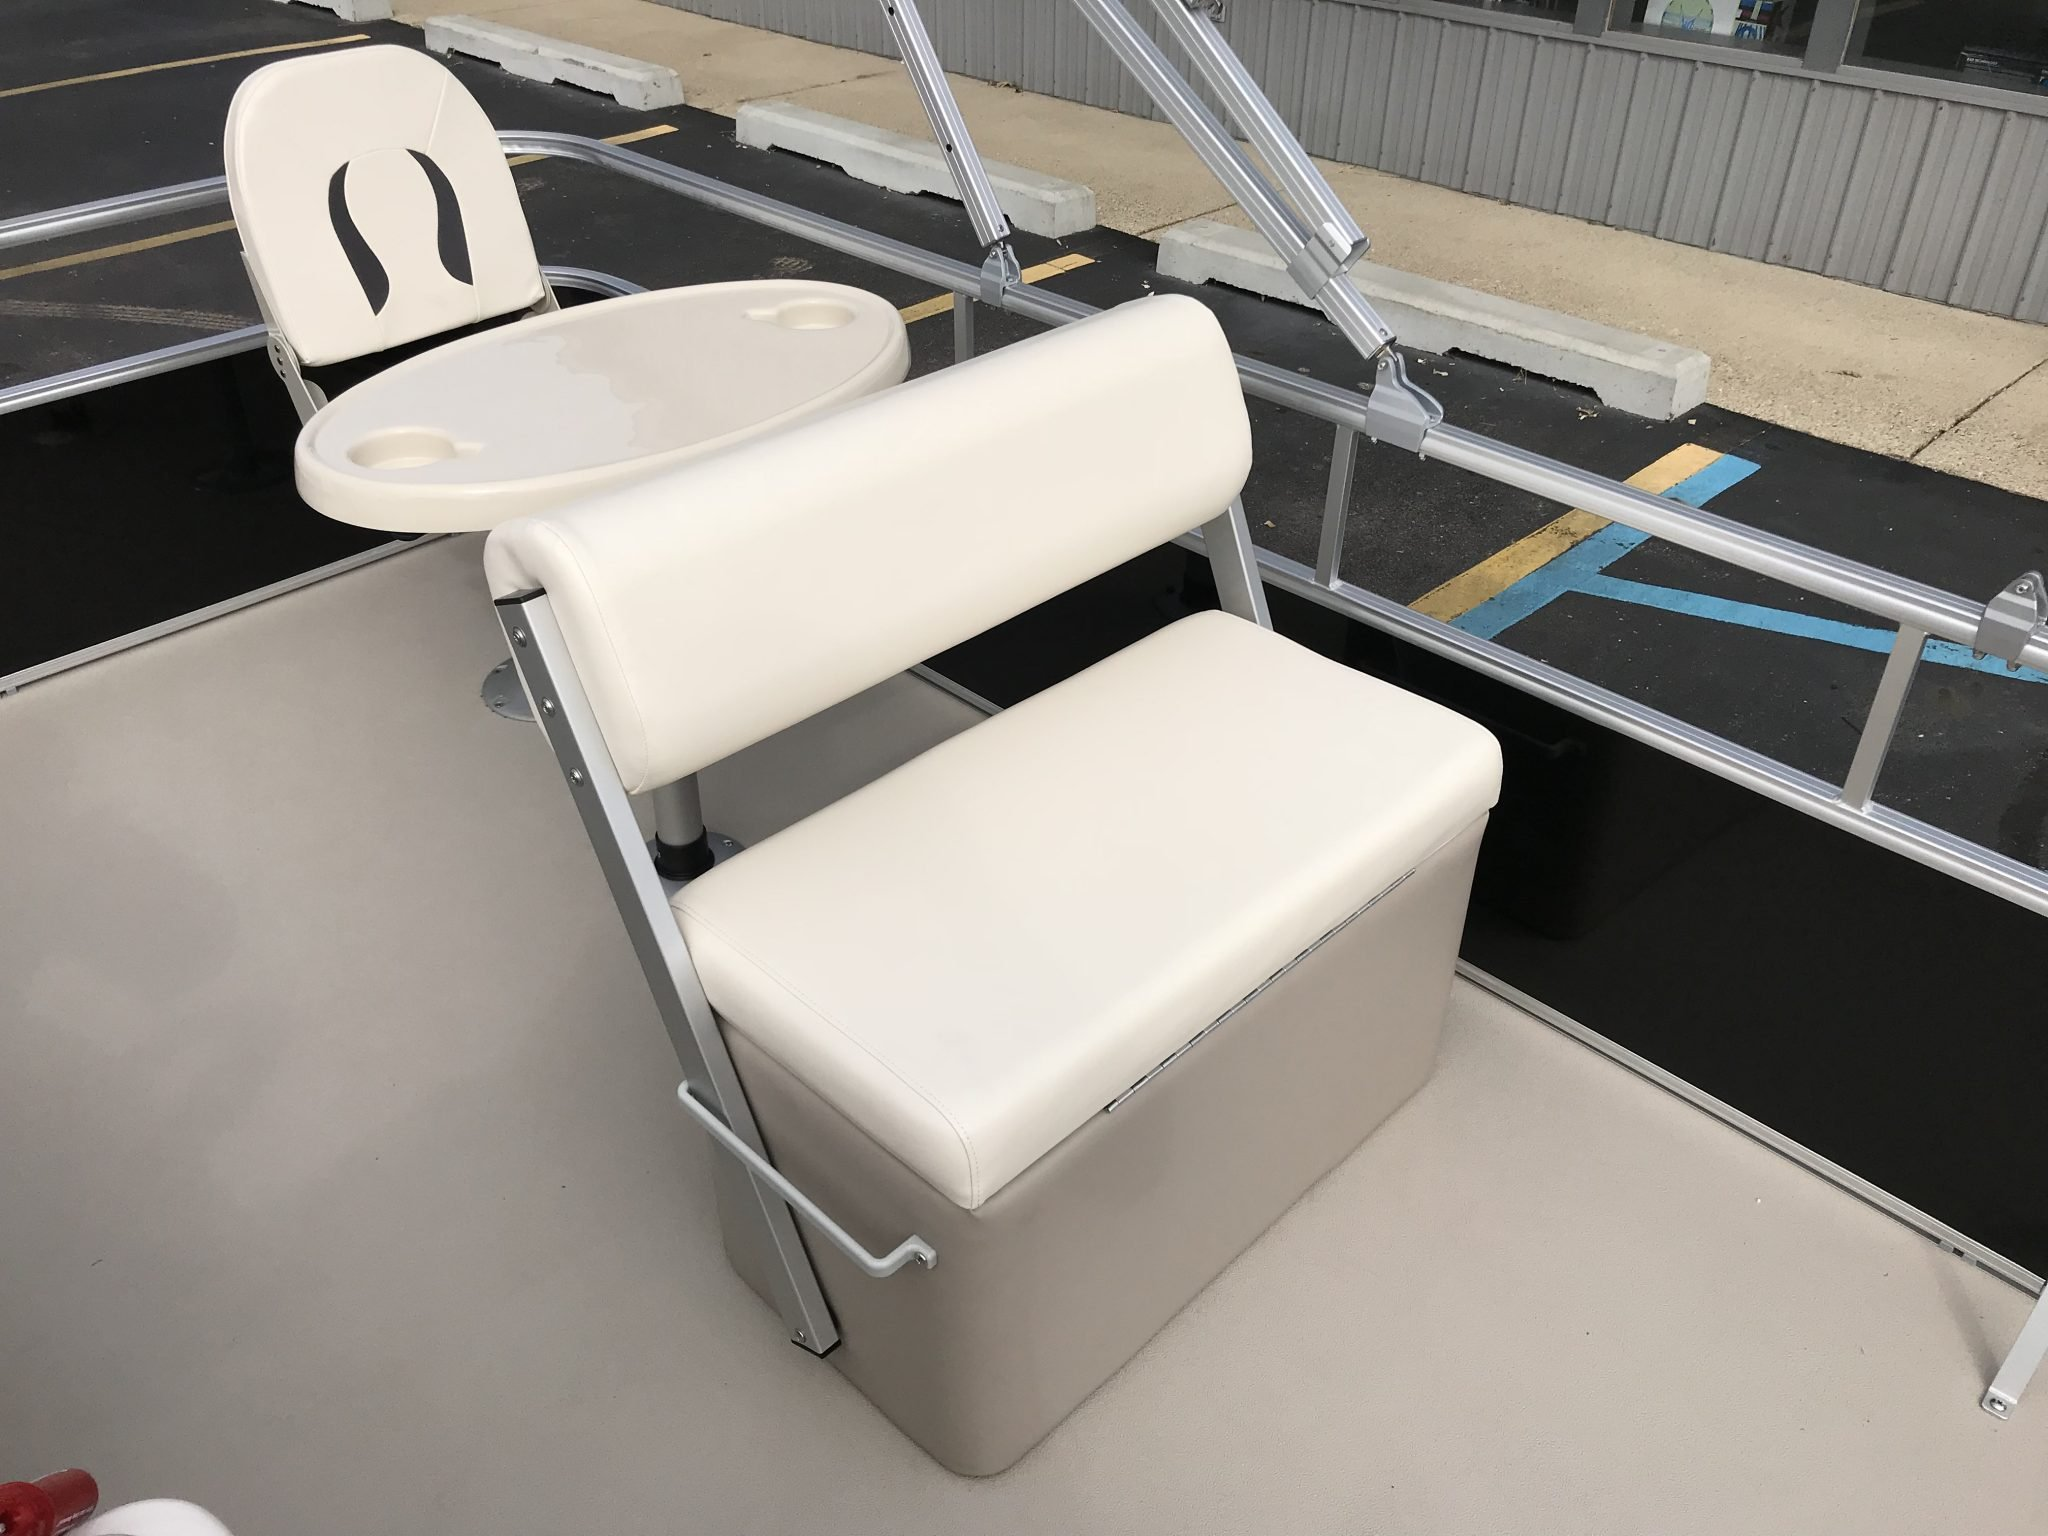 2019 SunChaser 818 4.0 Interior Flip-Flop Livewell Seating